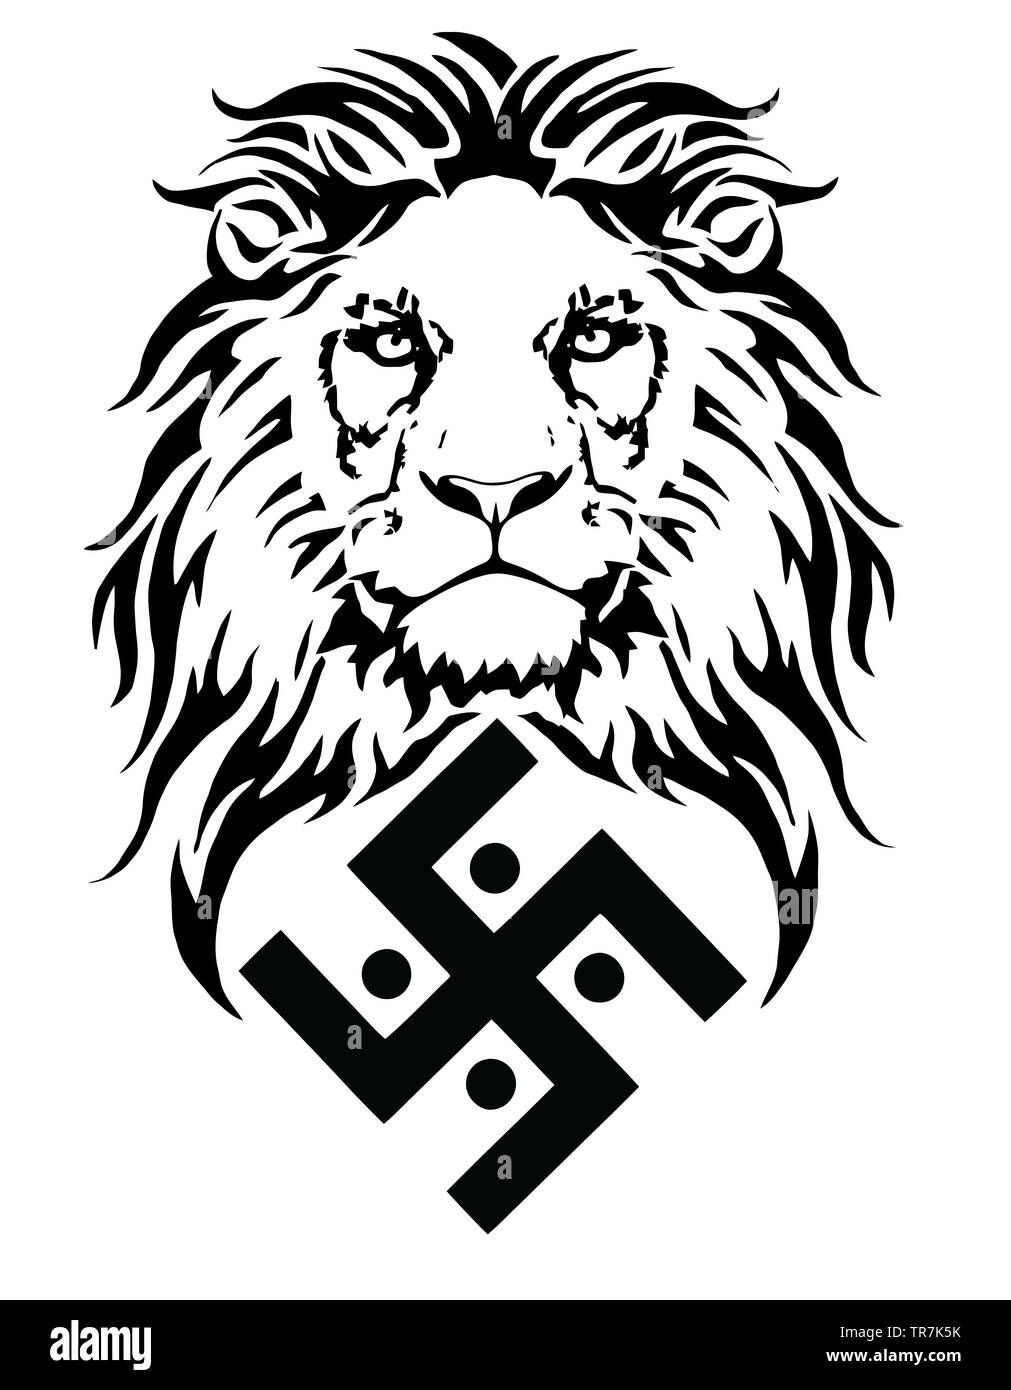 928f77033 The lion and the symbol of the Indian religion of Jainism - the swastika,  drawing